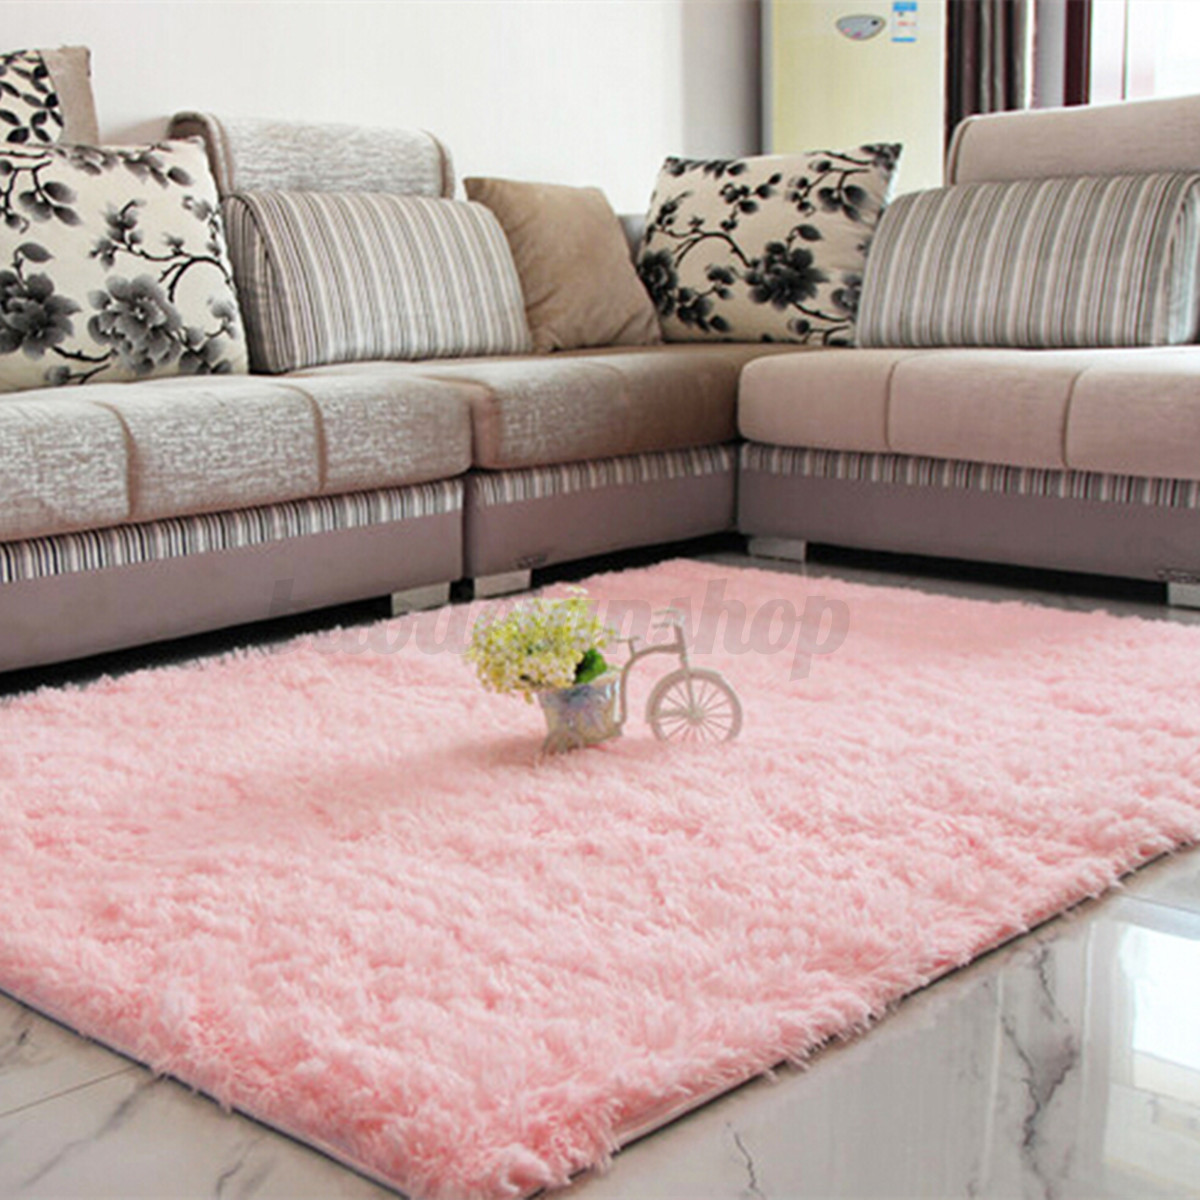 Fluffy Rugs Anti Skid Shaggy Area Rug Dining Room Home Room Carpet